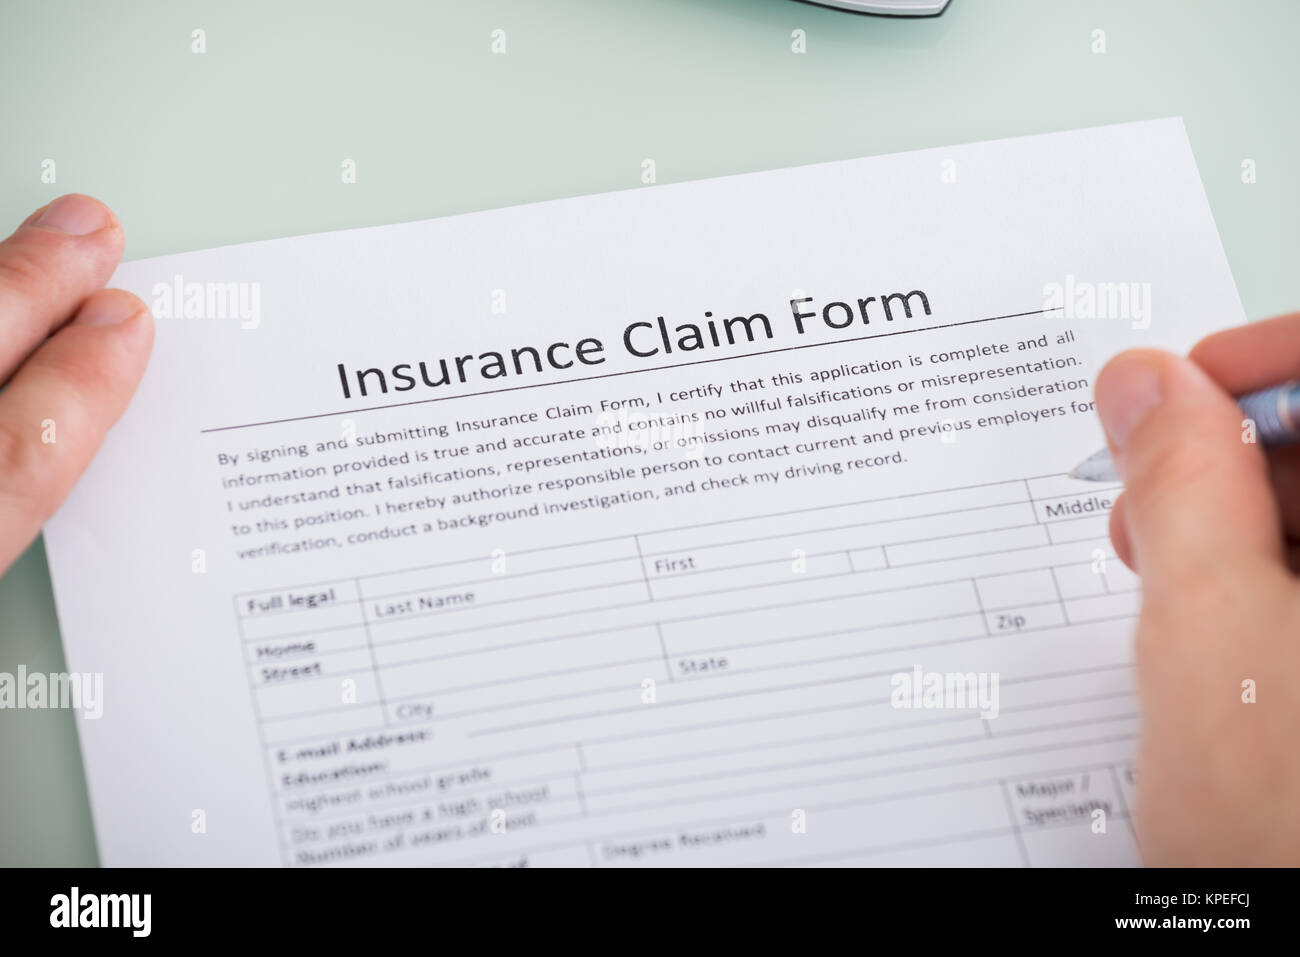 Person Hand Over Insurance Claim Form - Stock Image